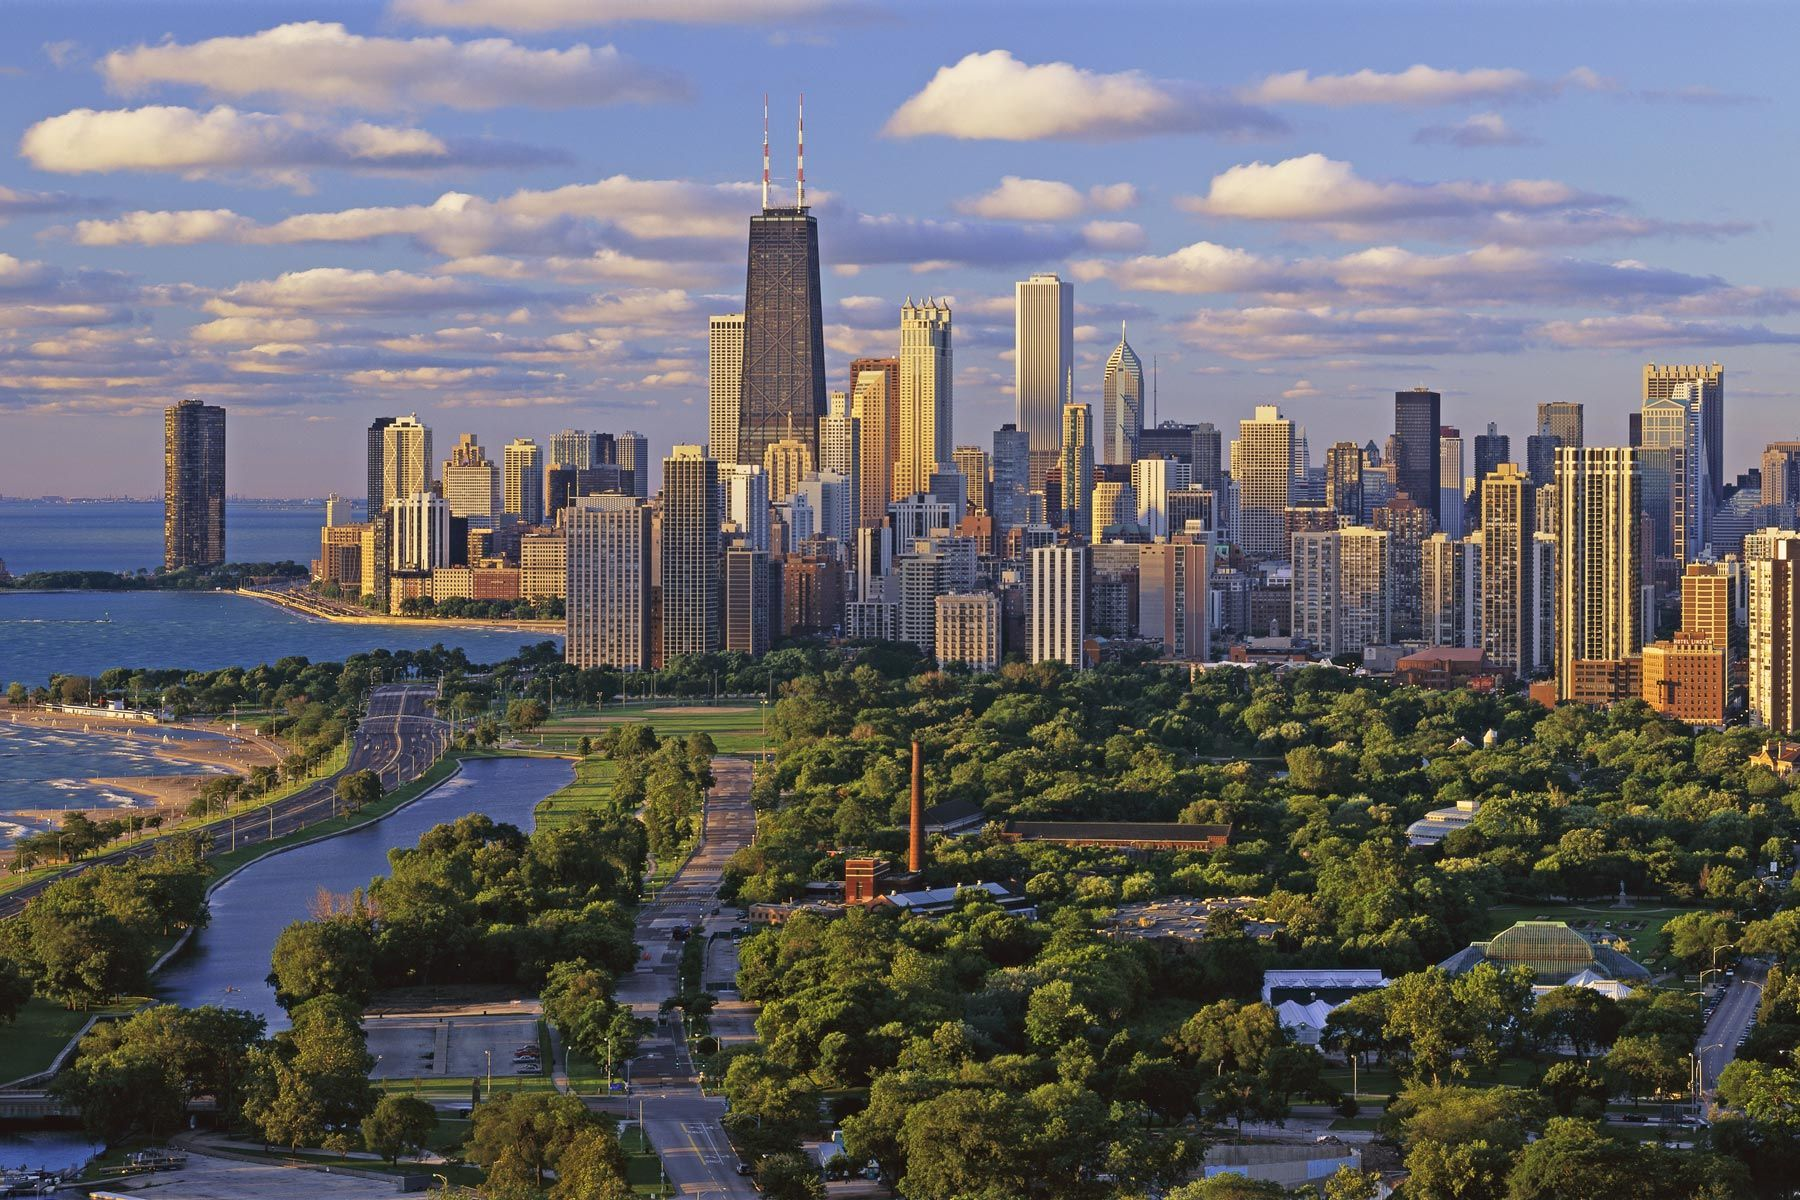 Our Expert Guide to the Highlights of Chicago